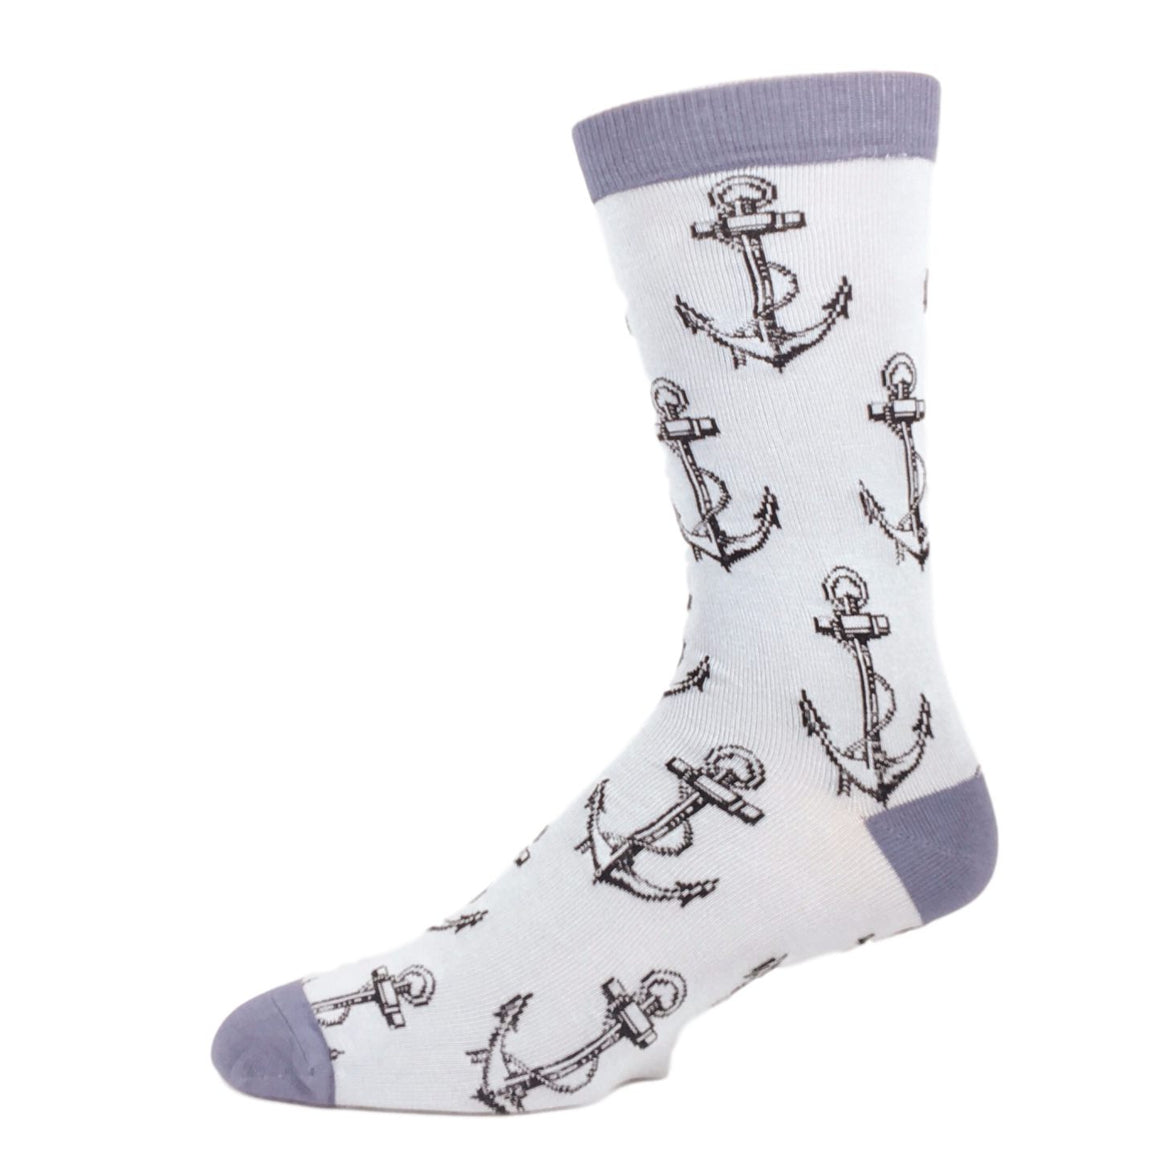 Anchors Away Bamboo Socks by SockSmith - The Sock Spot